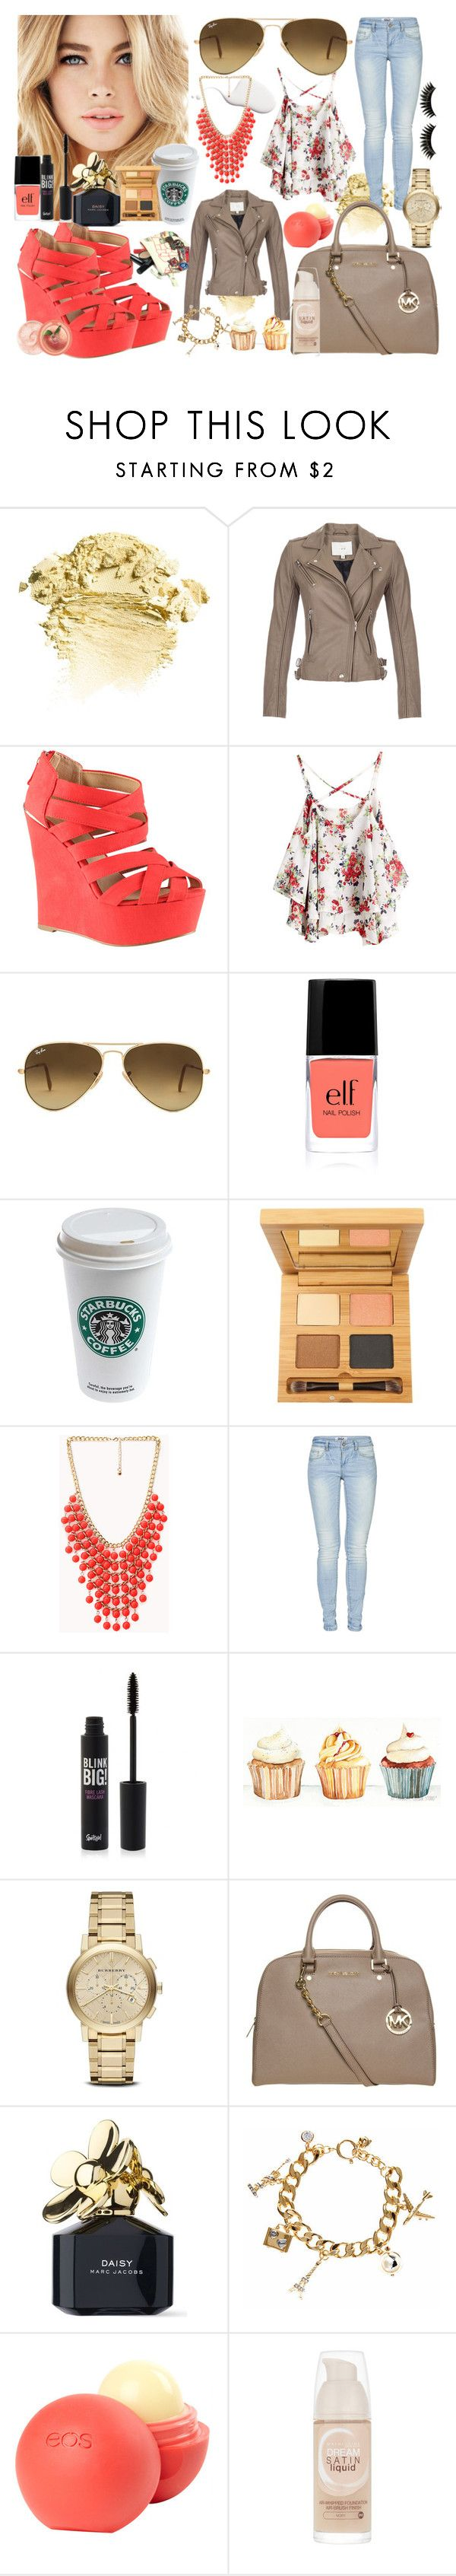 """Summer time*"" by maryterojasf ❤ liked on Polyvore featuring IRO, ALDO, Ray-Ban, Antonym, Forever 21, ONLY, Burberry, MICHAEL Michael Kors, Marc Jacobs and Juicy Couture"